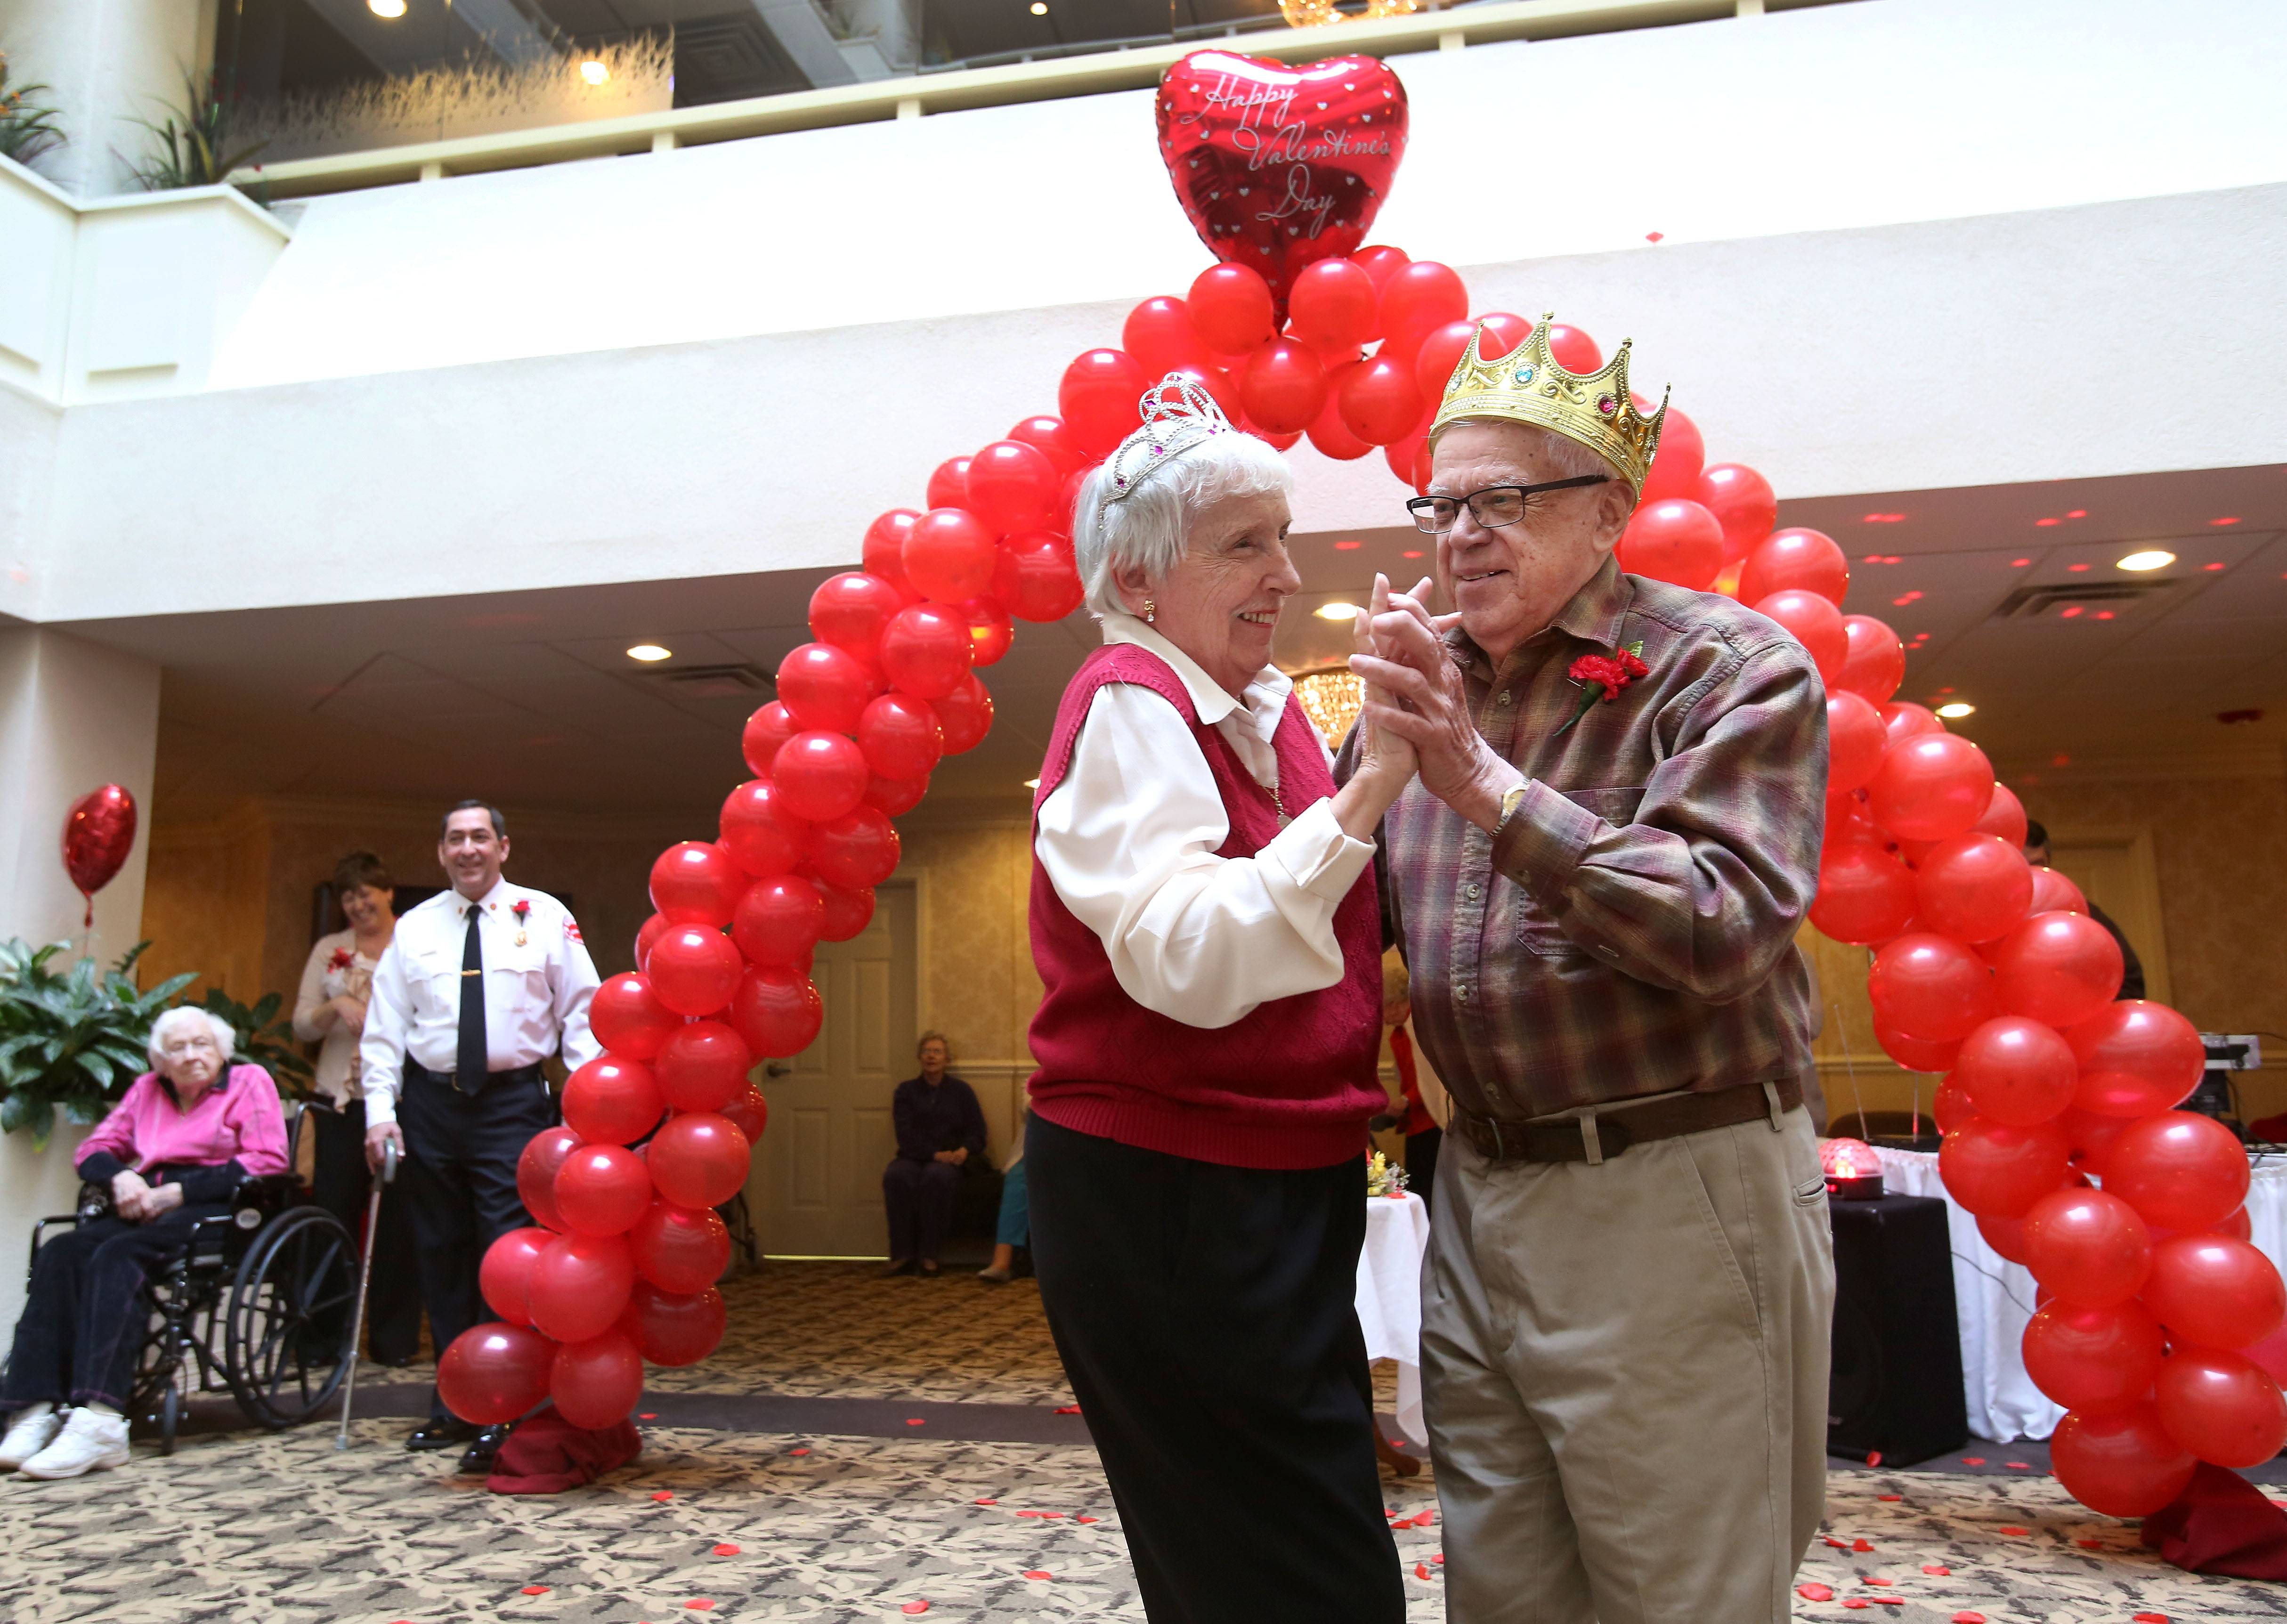 Lombard Fire Chief Paul Dirienzo, left, looks on as Ray Knable and Joanne Campbell, crowned king and queen of the Valentine's Day Dance, take to the floor at Lexington Square senior center in Lombard.